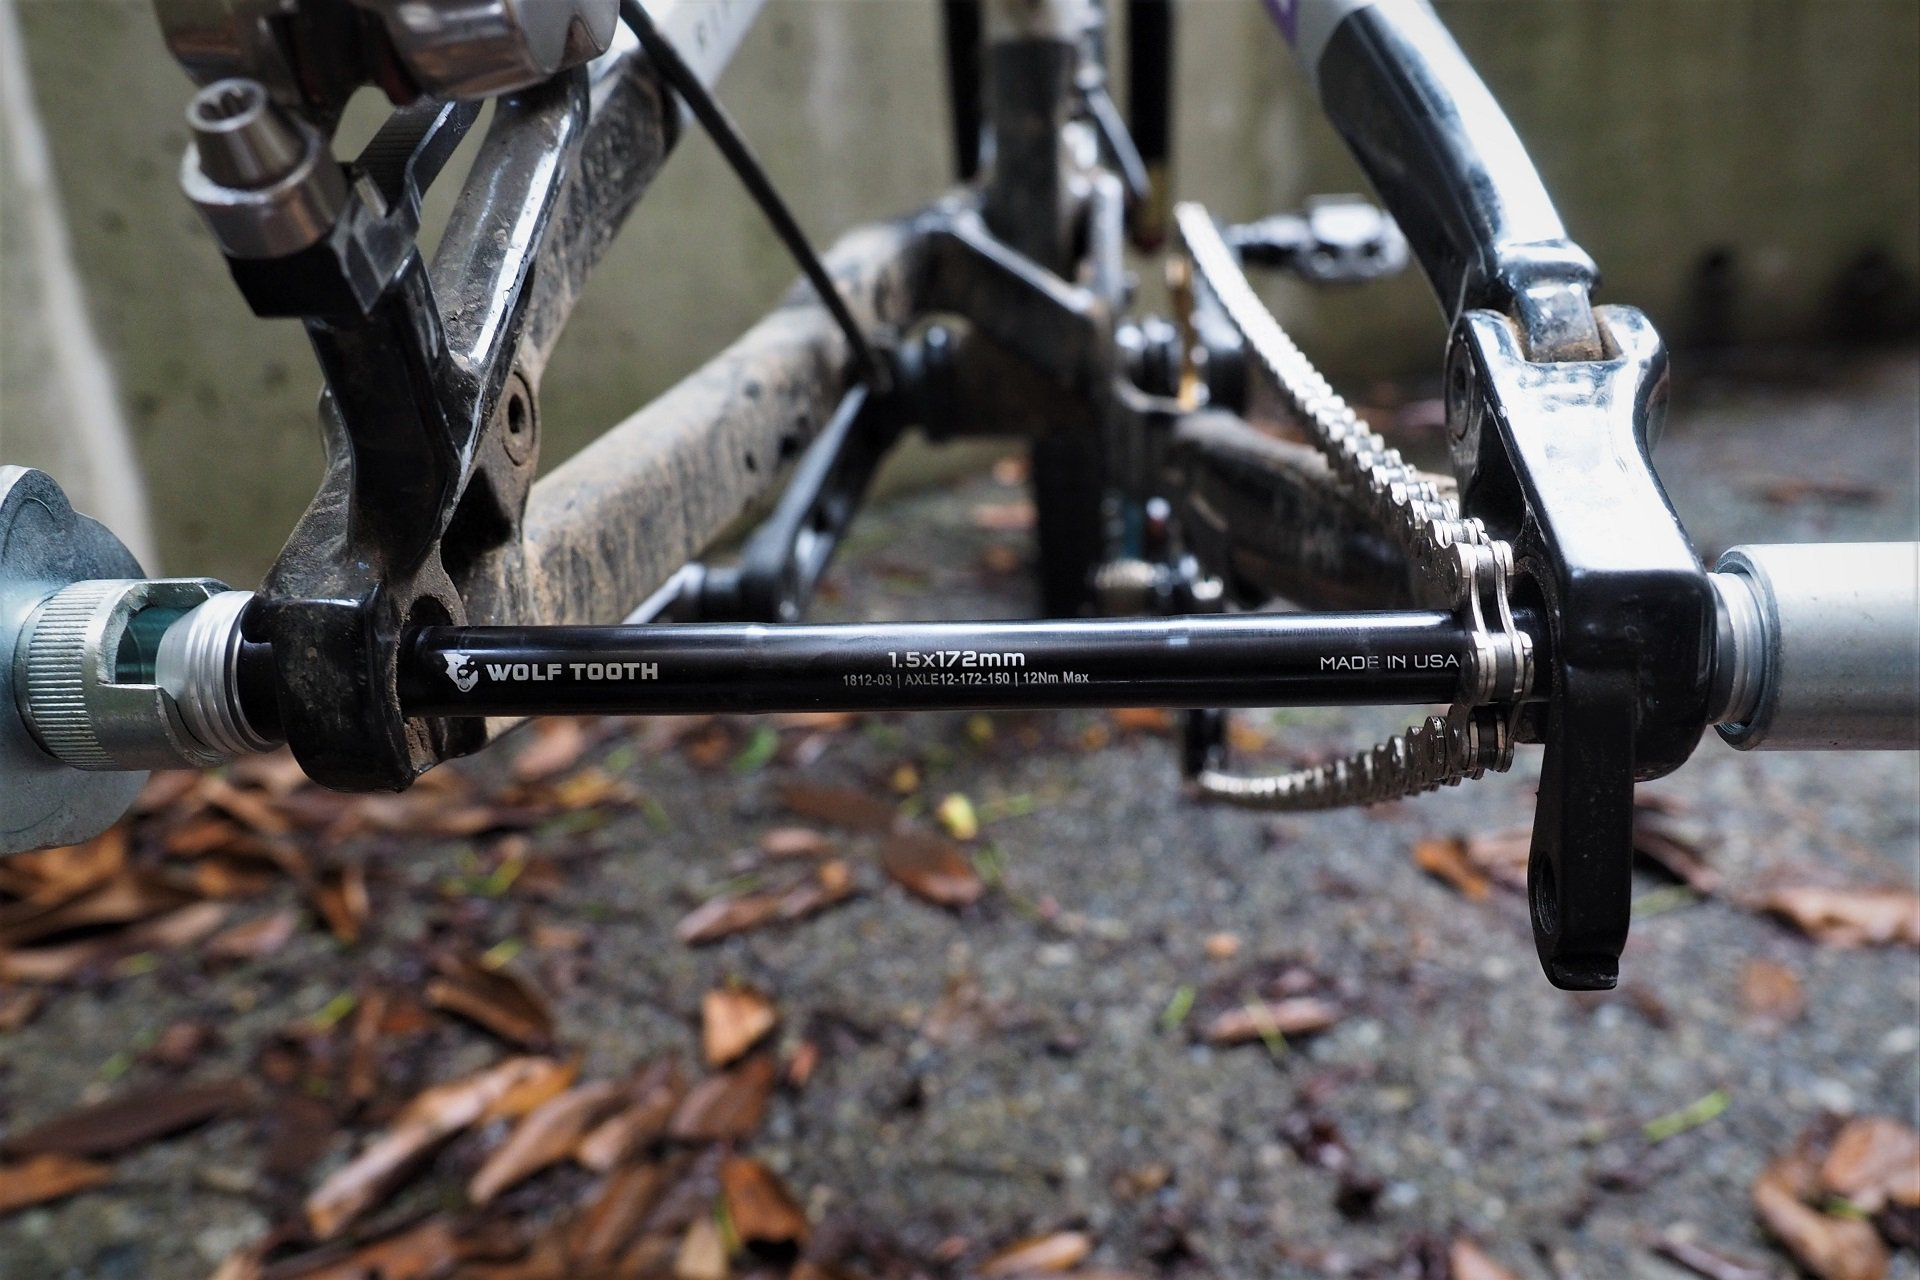 Wolf Tooth Components Rear Axle AndrewM